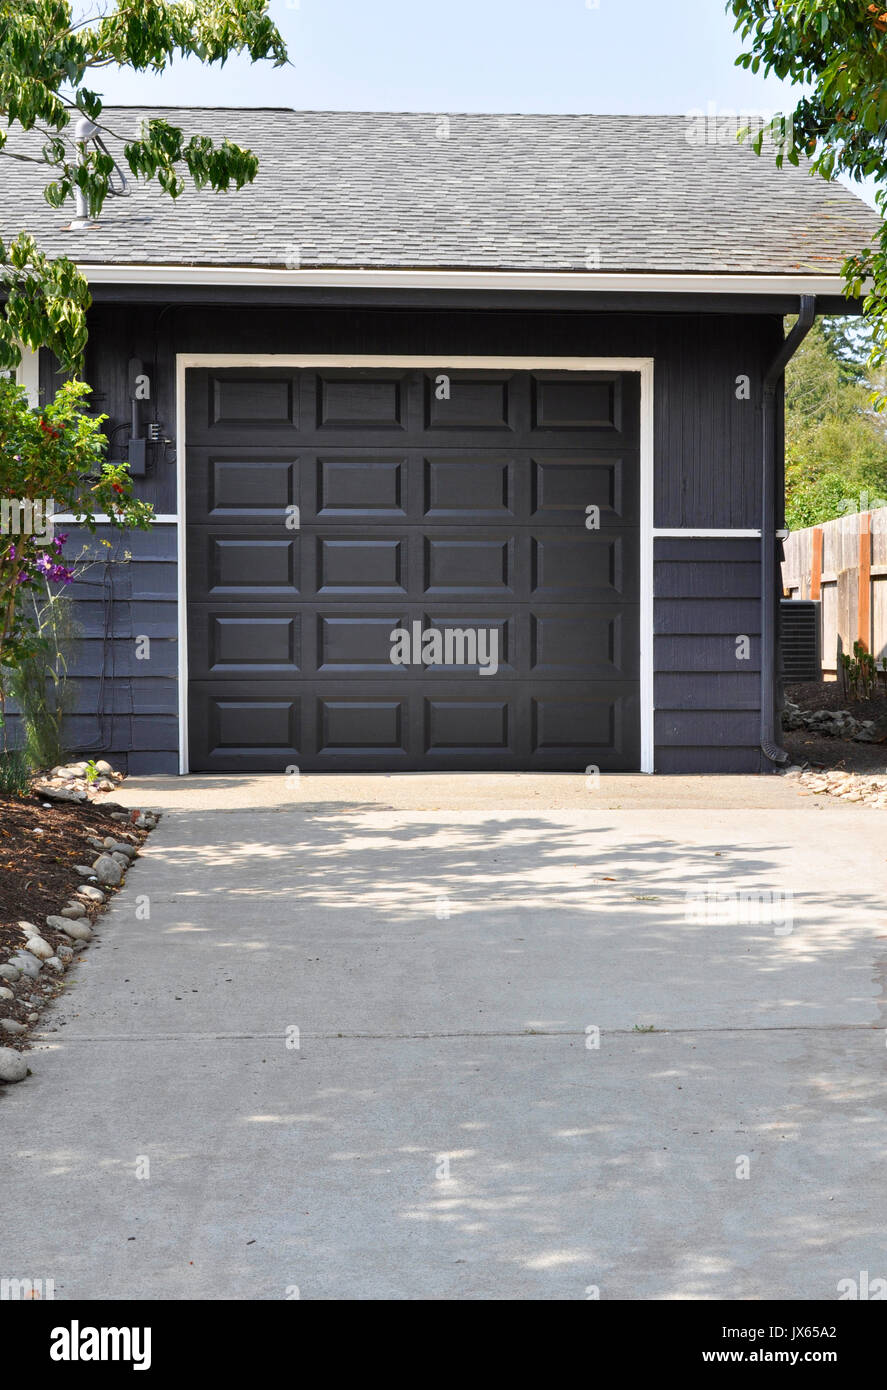 Charmant Exterior Single Car Garage With The Door Closed In A Dark Gray Or Charcoal  Color At The End Of A Driveway.